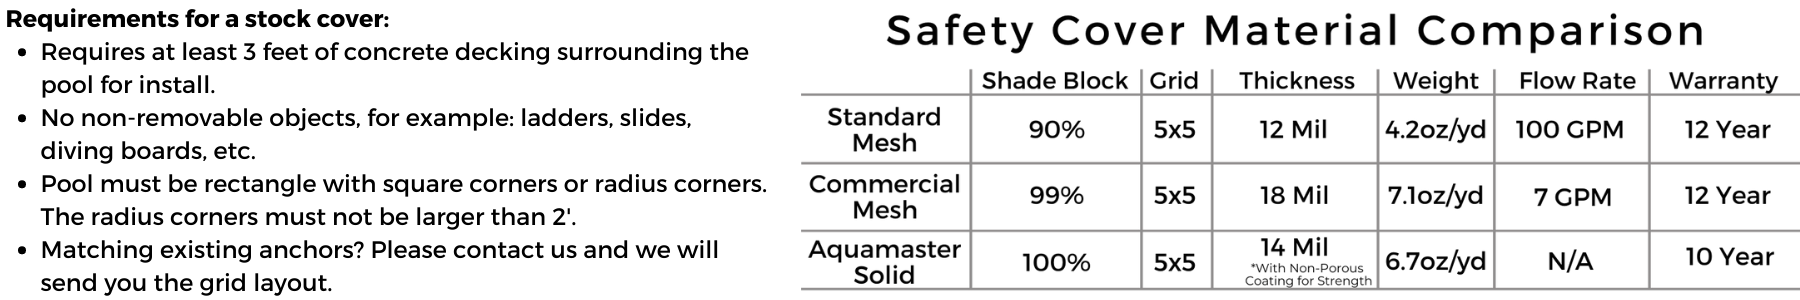 copy-of-copy-of-copy-of-safety-pool-covers.png